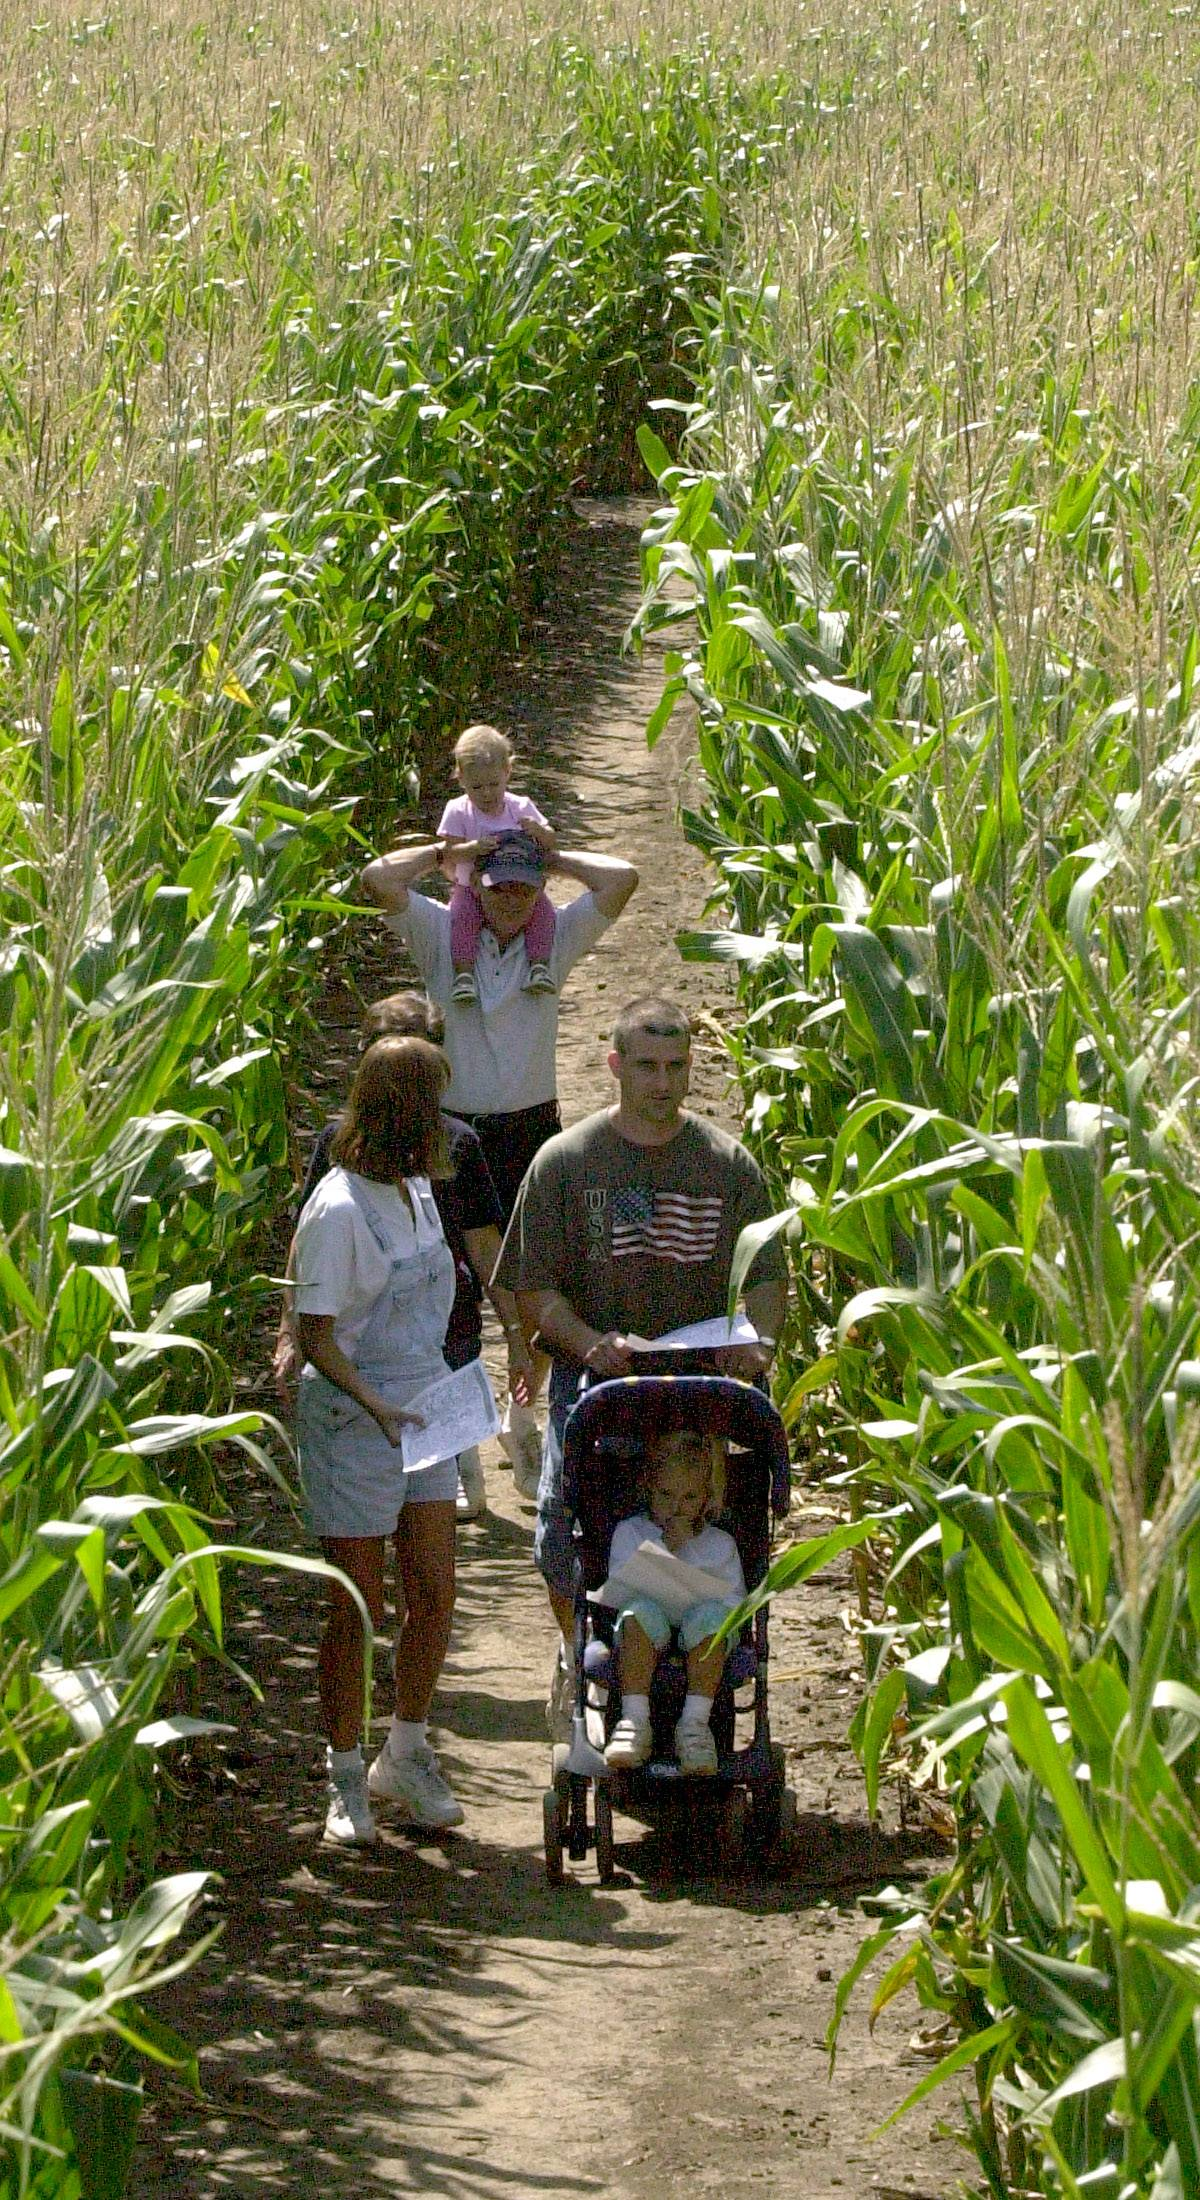 The corn maze at Richardson Farm in Spring Grove is elaborately detailed.